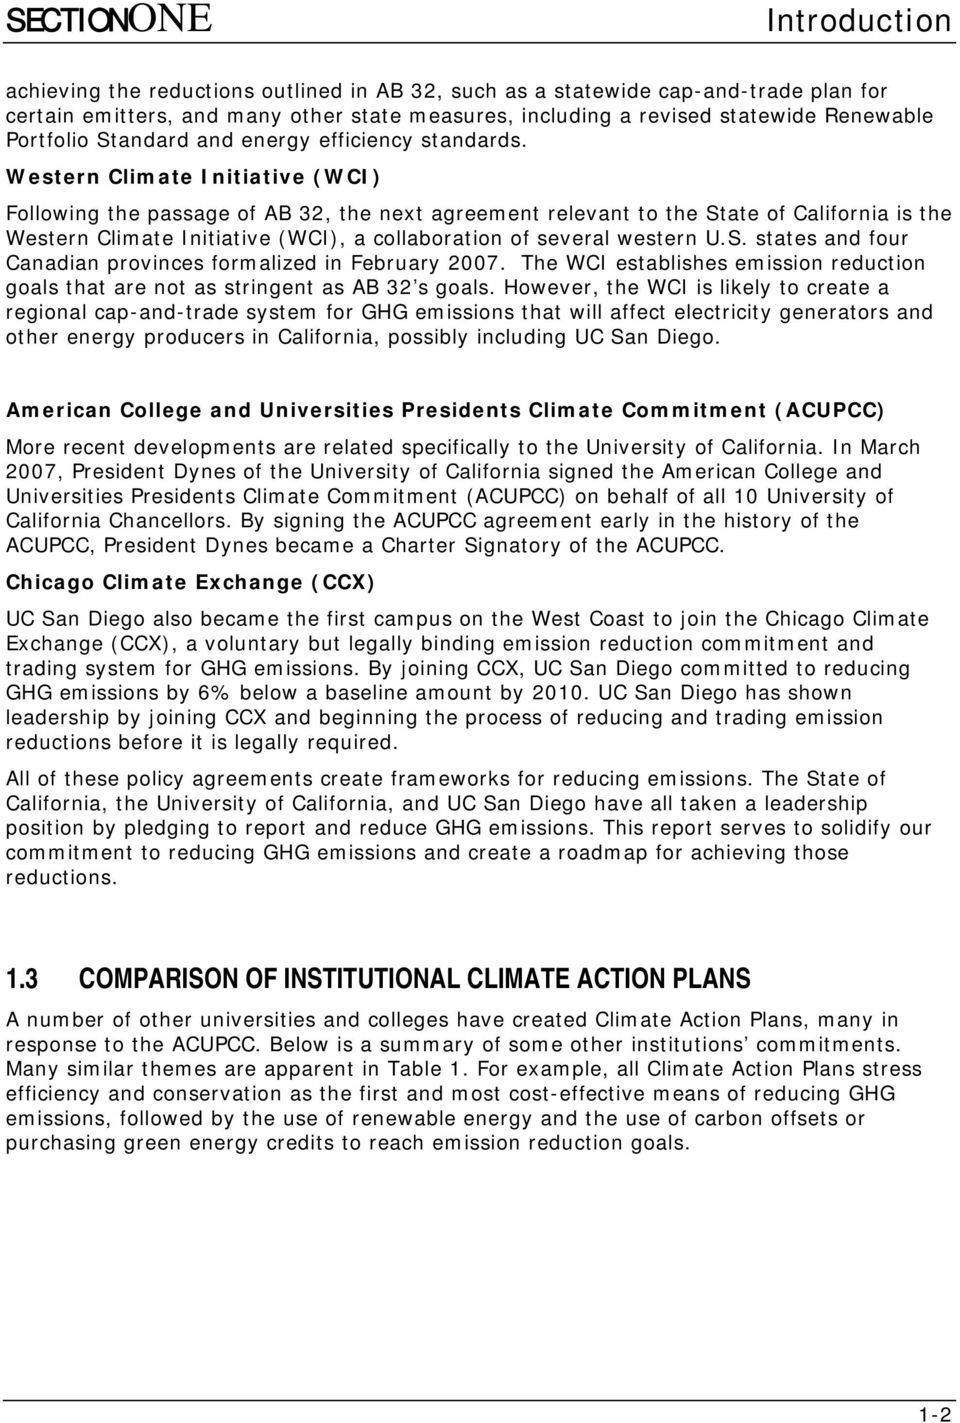 Western Climate Initiative (WCI) Following the passage of AB 32, the next agreement relevant to the State of California is the Western Climate Initiative (WCI), a collaboration of several western U.S. states and four Canadian provinces formalized in February 2007.